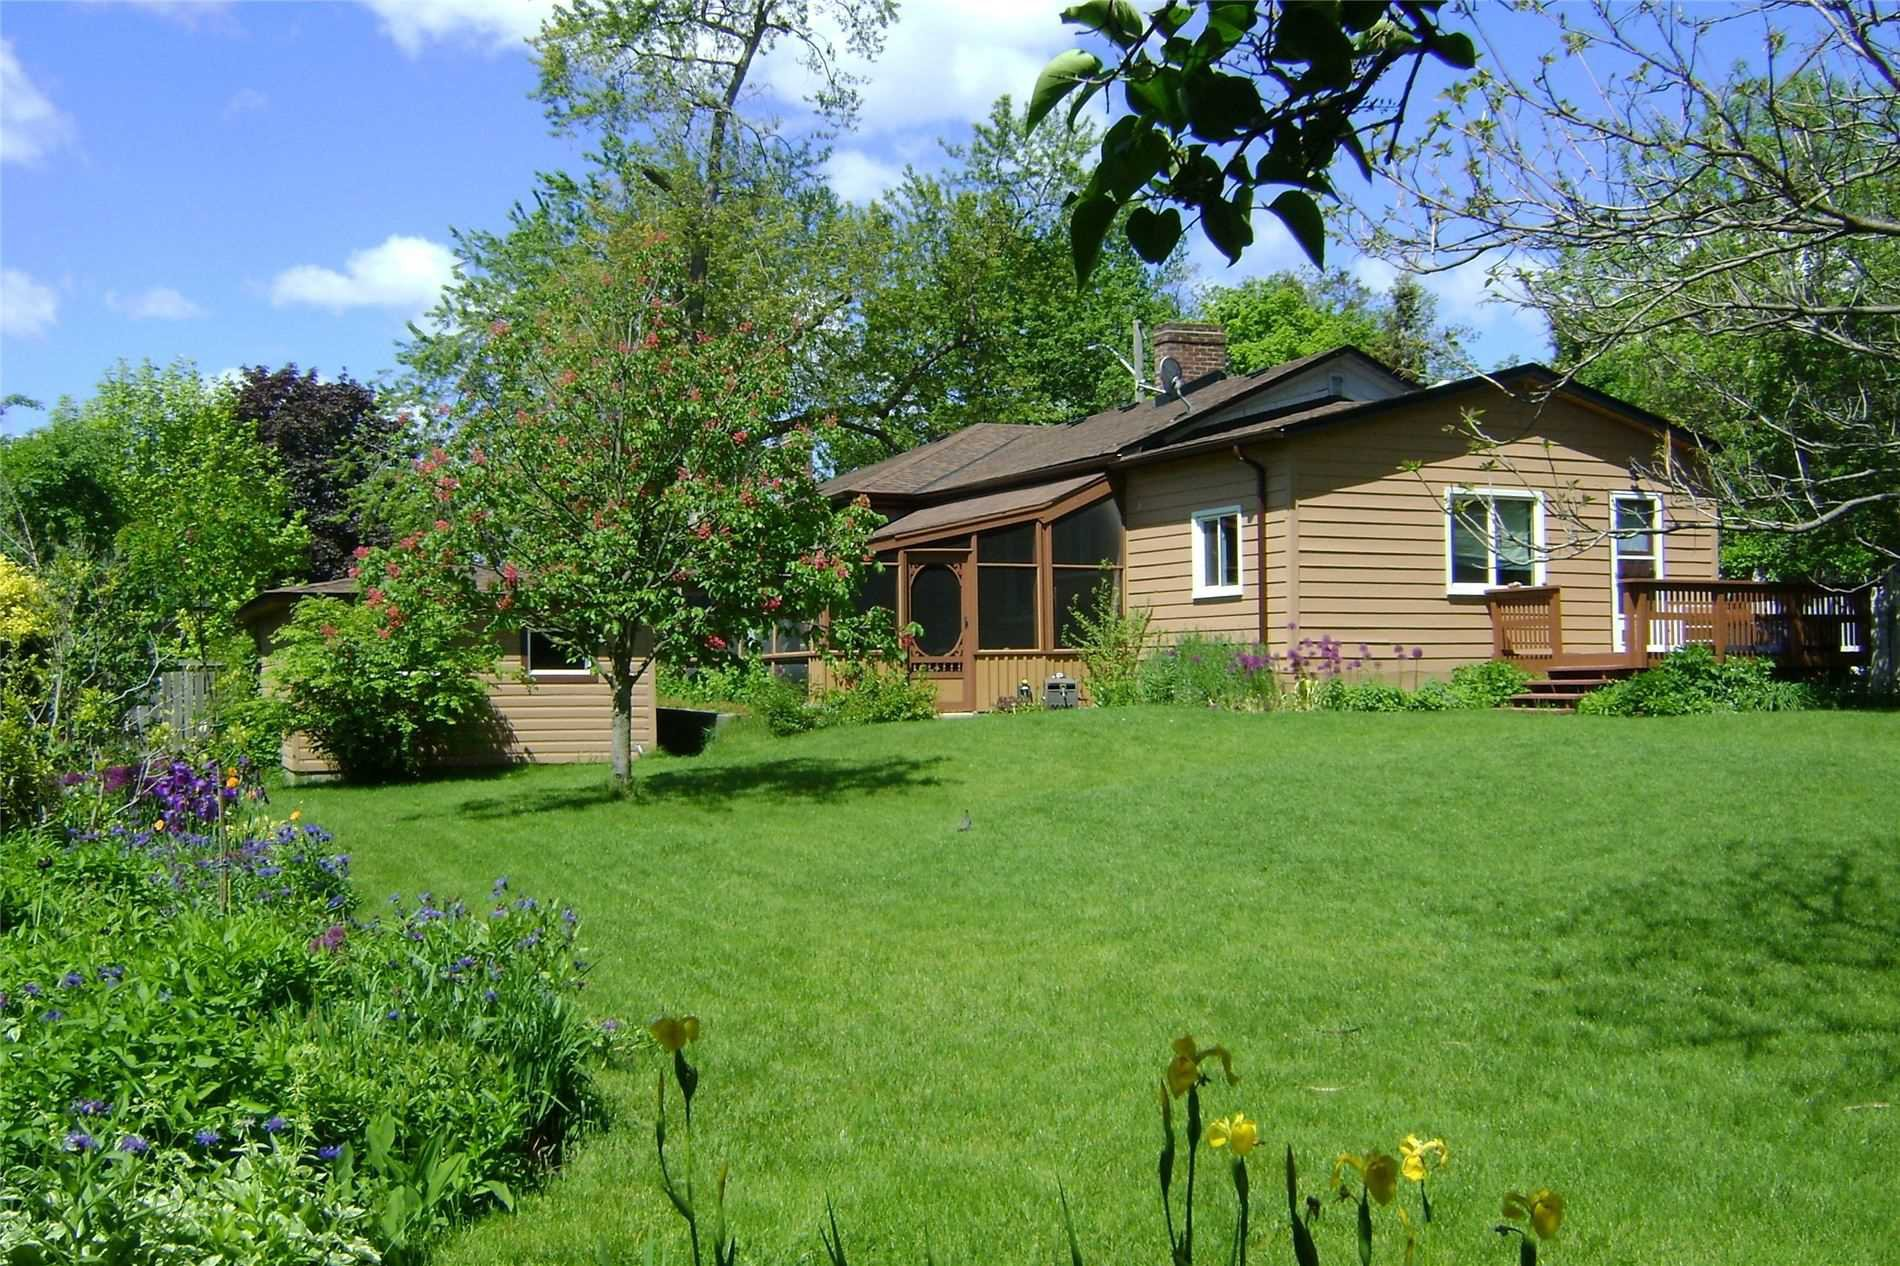 Photo 17: Photos: 1009 S Centre Street in Whitby: Downtown Whitby House (Bungalow) for sale : MLS®# E4714116